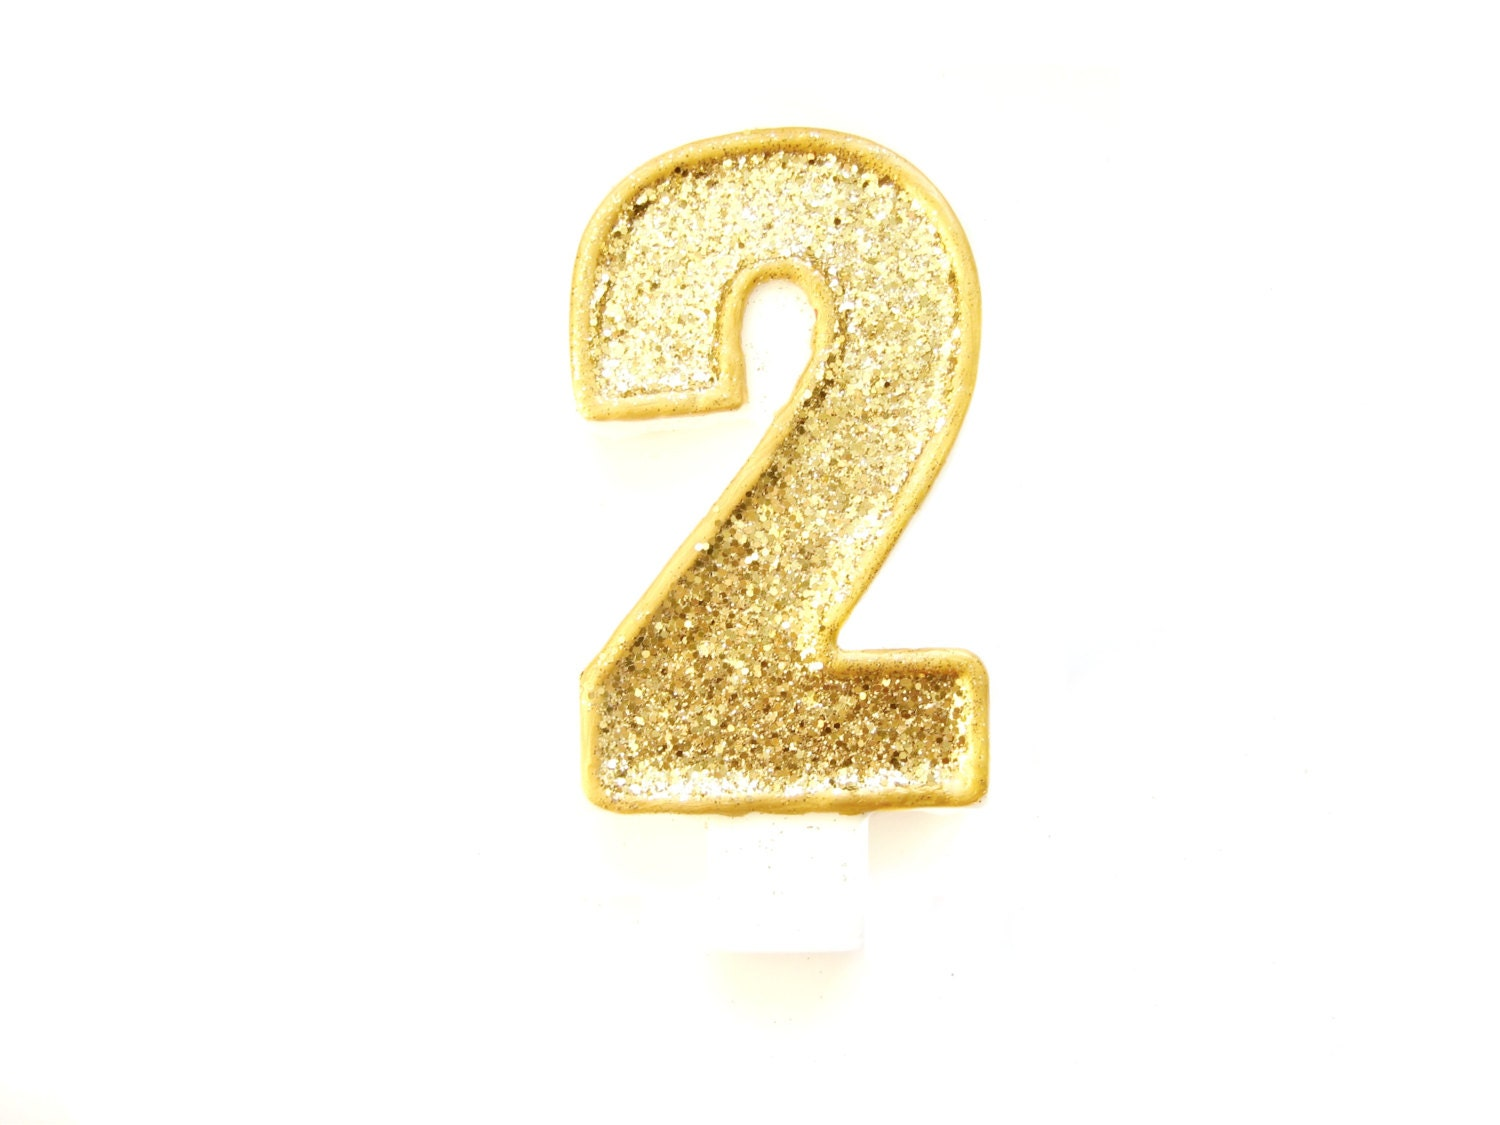 Giant Gold Glitter Number 2 Birthday Candle Birthday